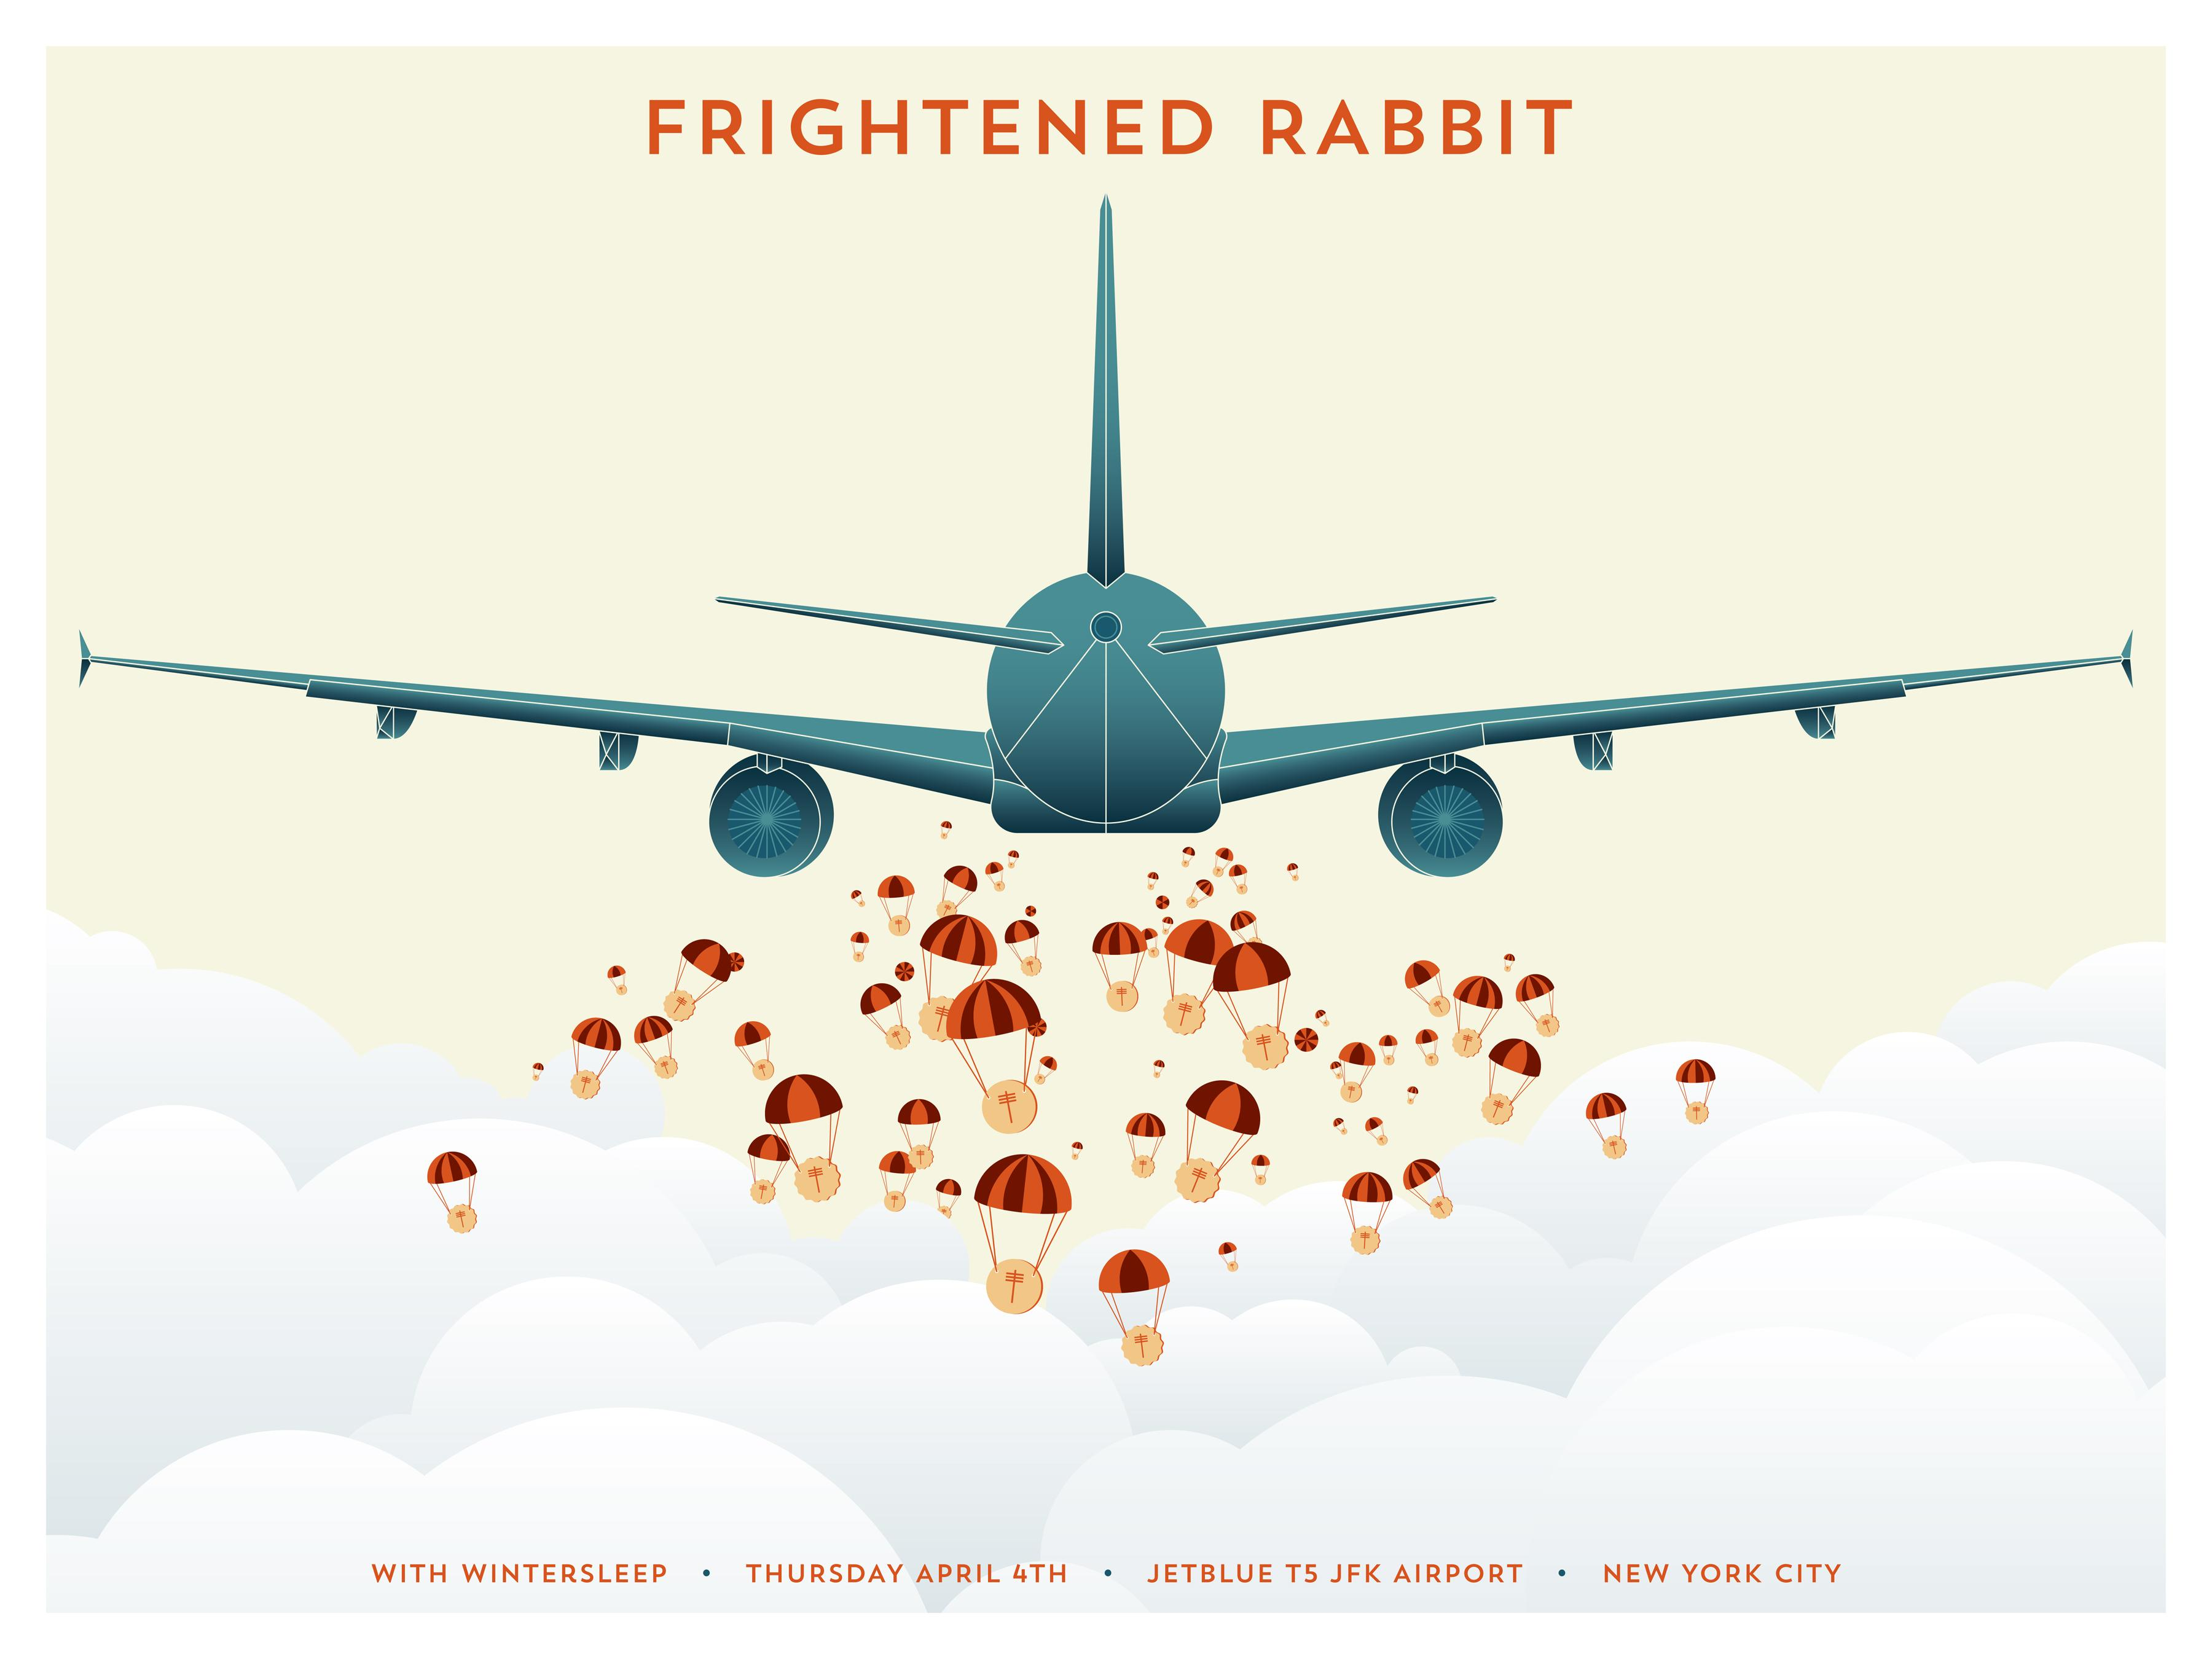 Frightened Rabbit @ T5 - image 2 - student project